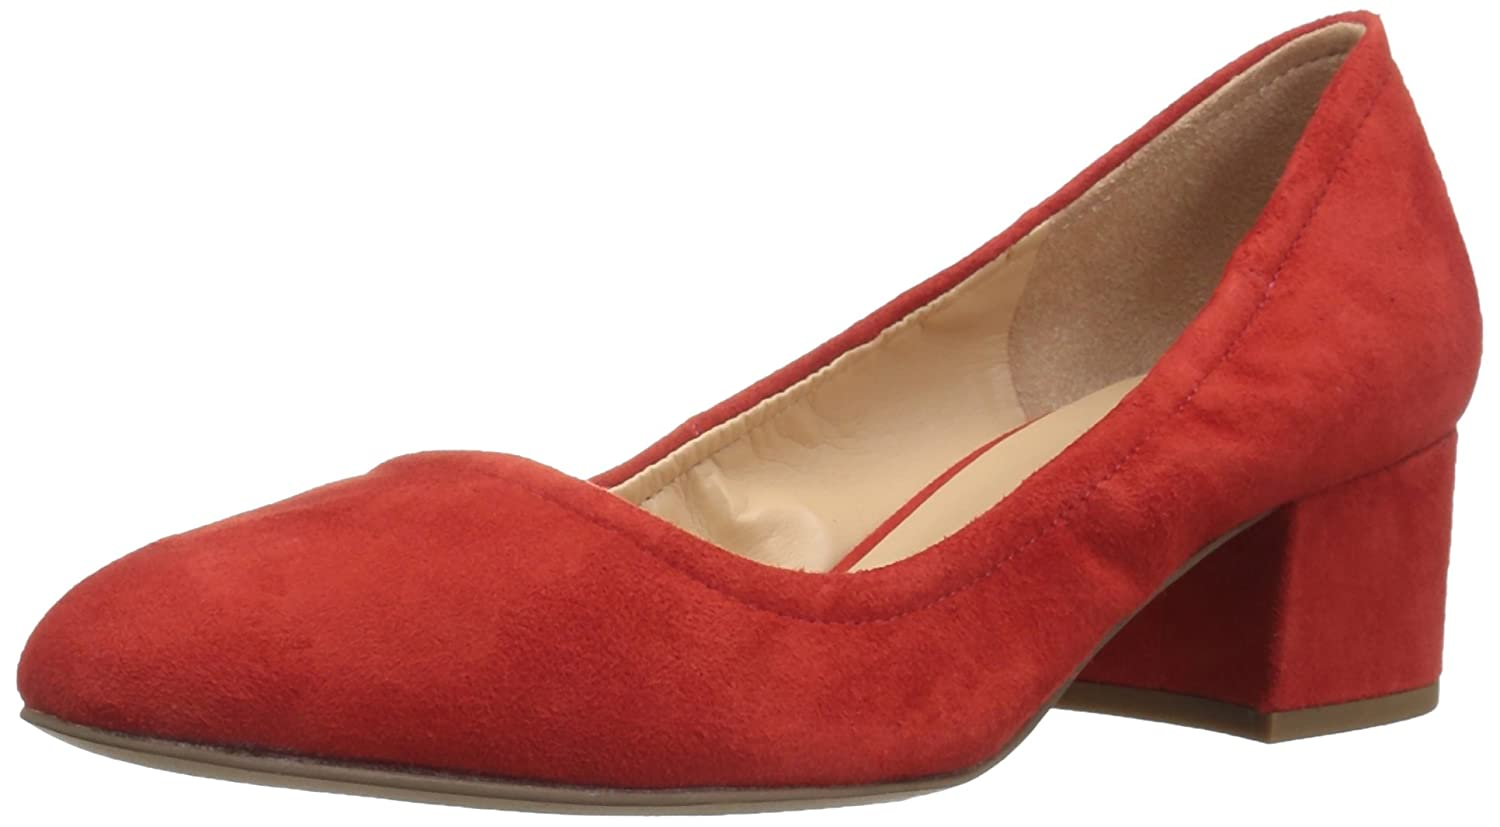 Franco Sarto Women's Fausta Pump B06XS65K23 8.5 B(M) US|Bright Red